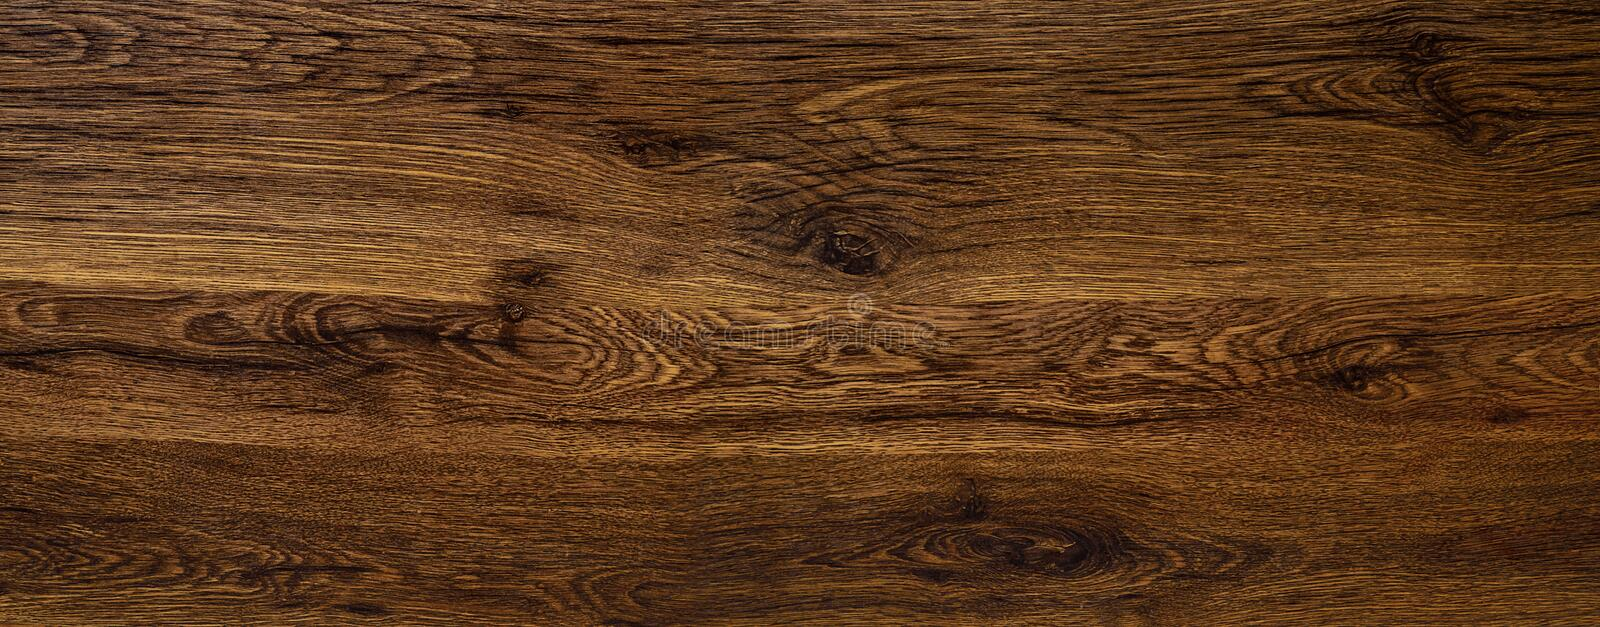 Polished wood surface. The background of polished wood texture royalty free stock images